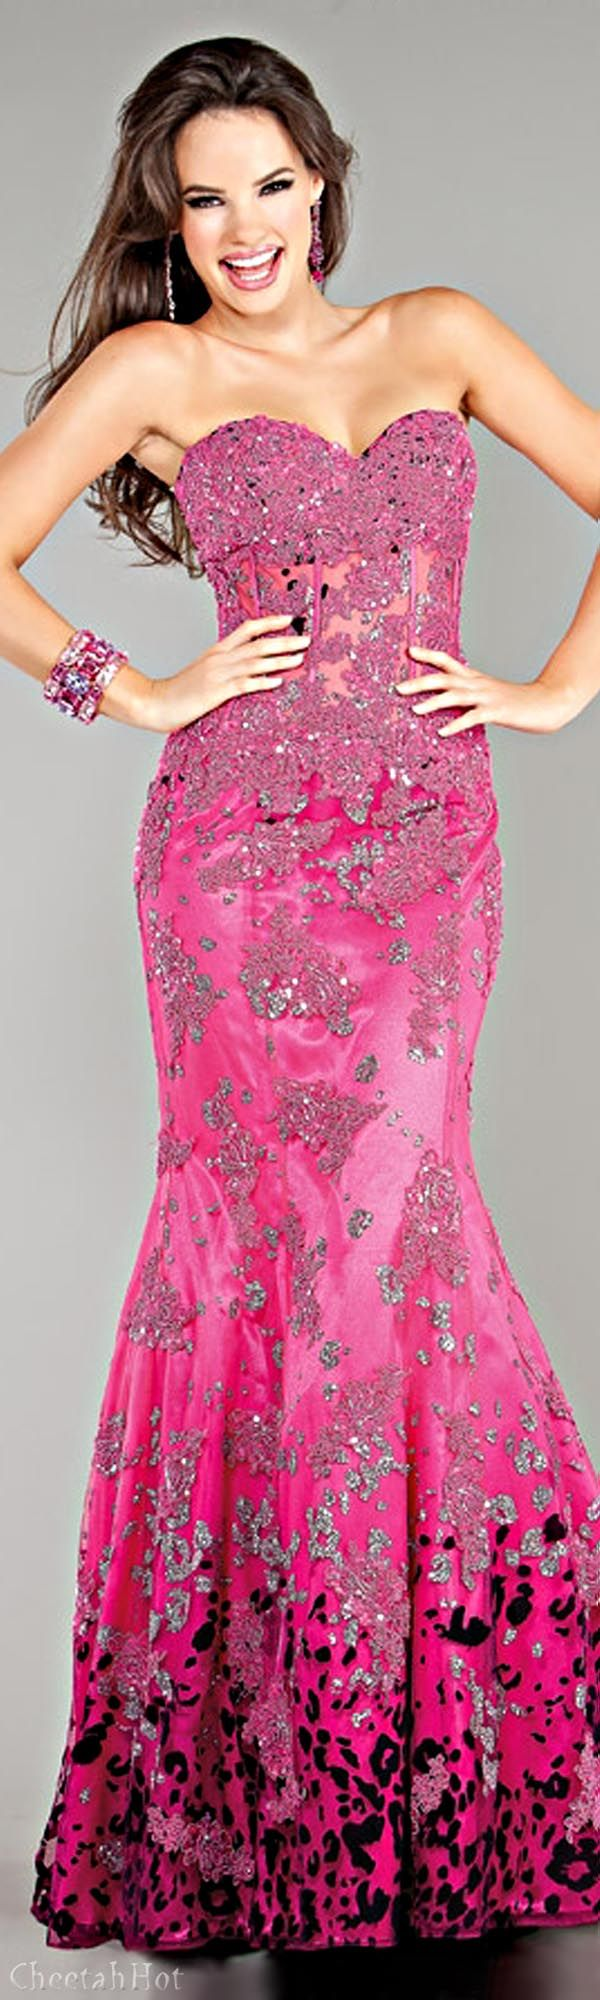 1000  ideas about Pink Evening Gowns on Pinterest - Black shoe ...